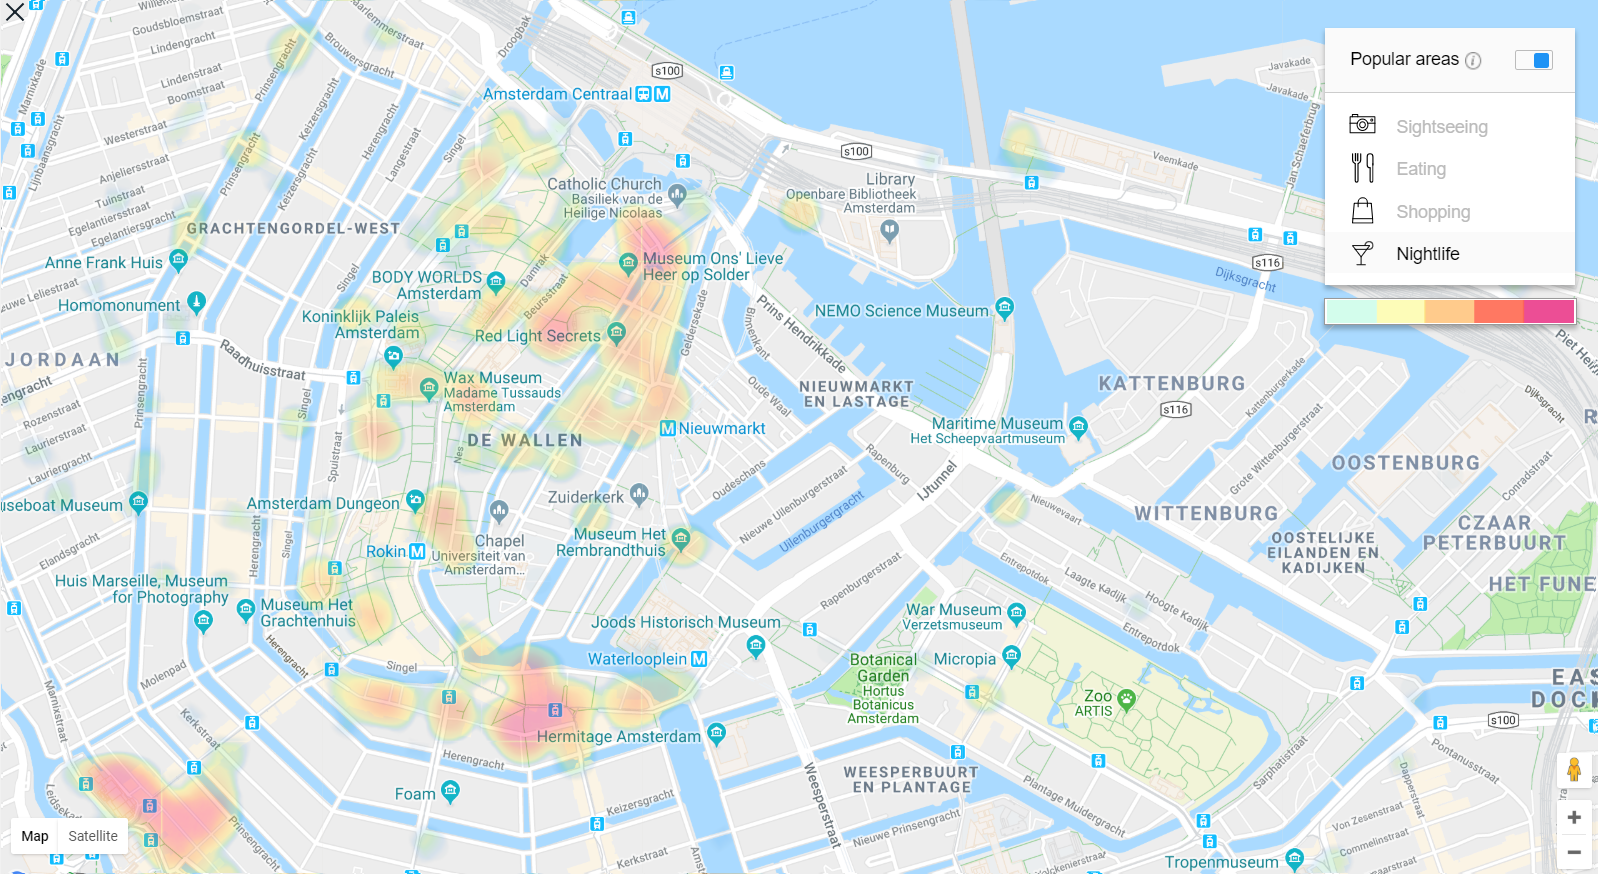 Amsterdam Heat Map - best nightlife